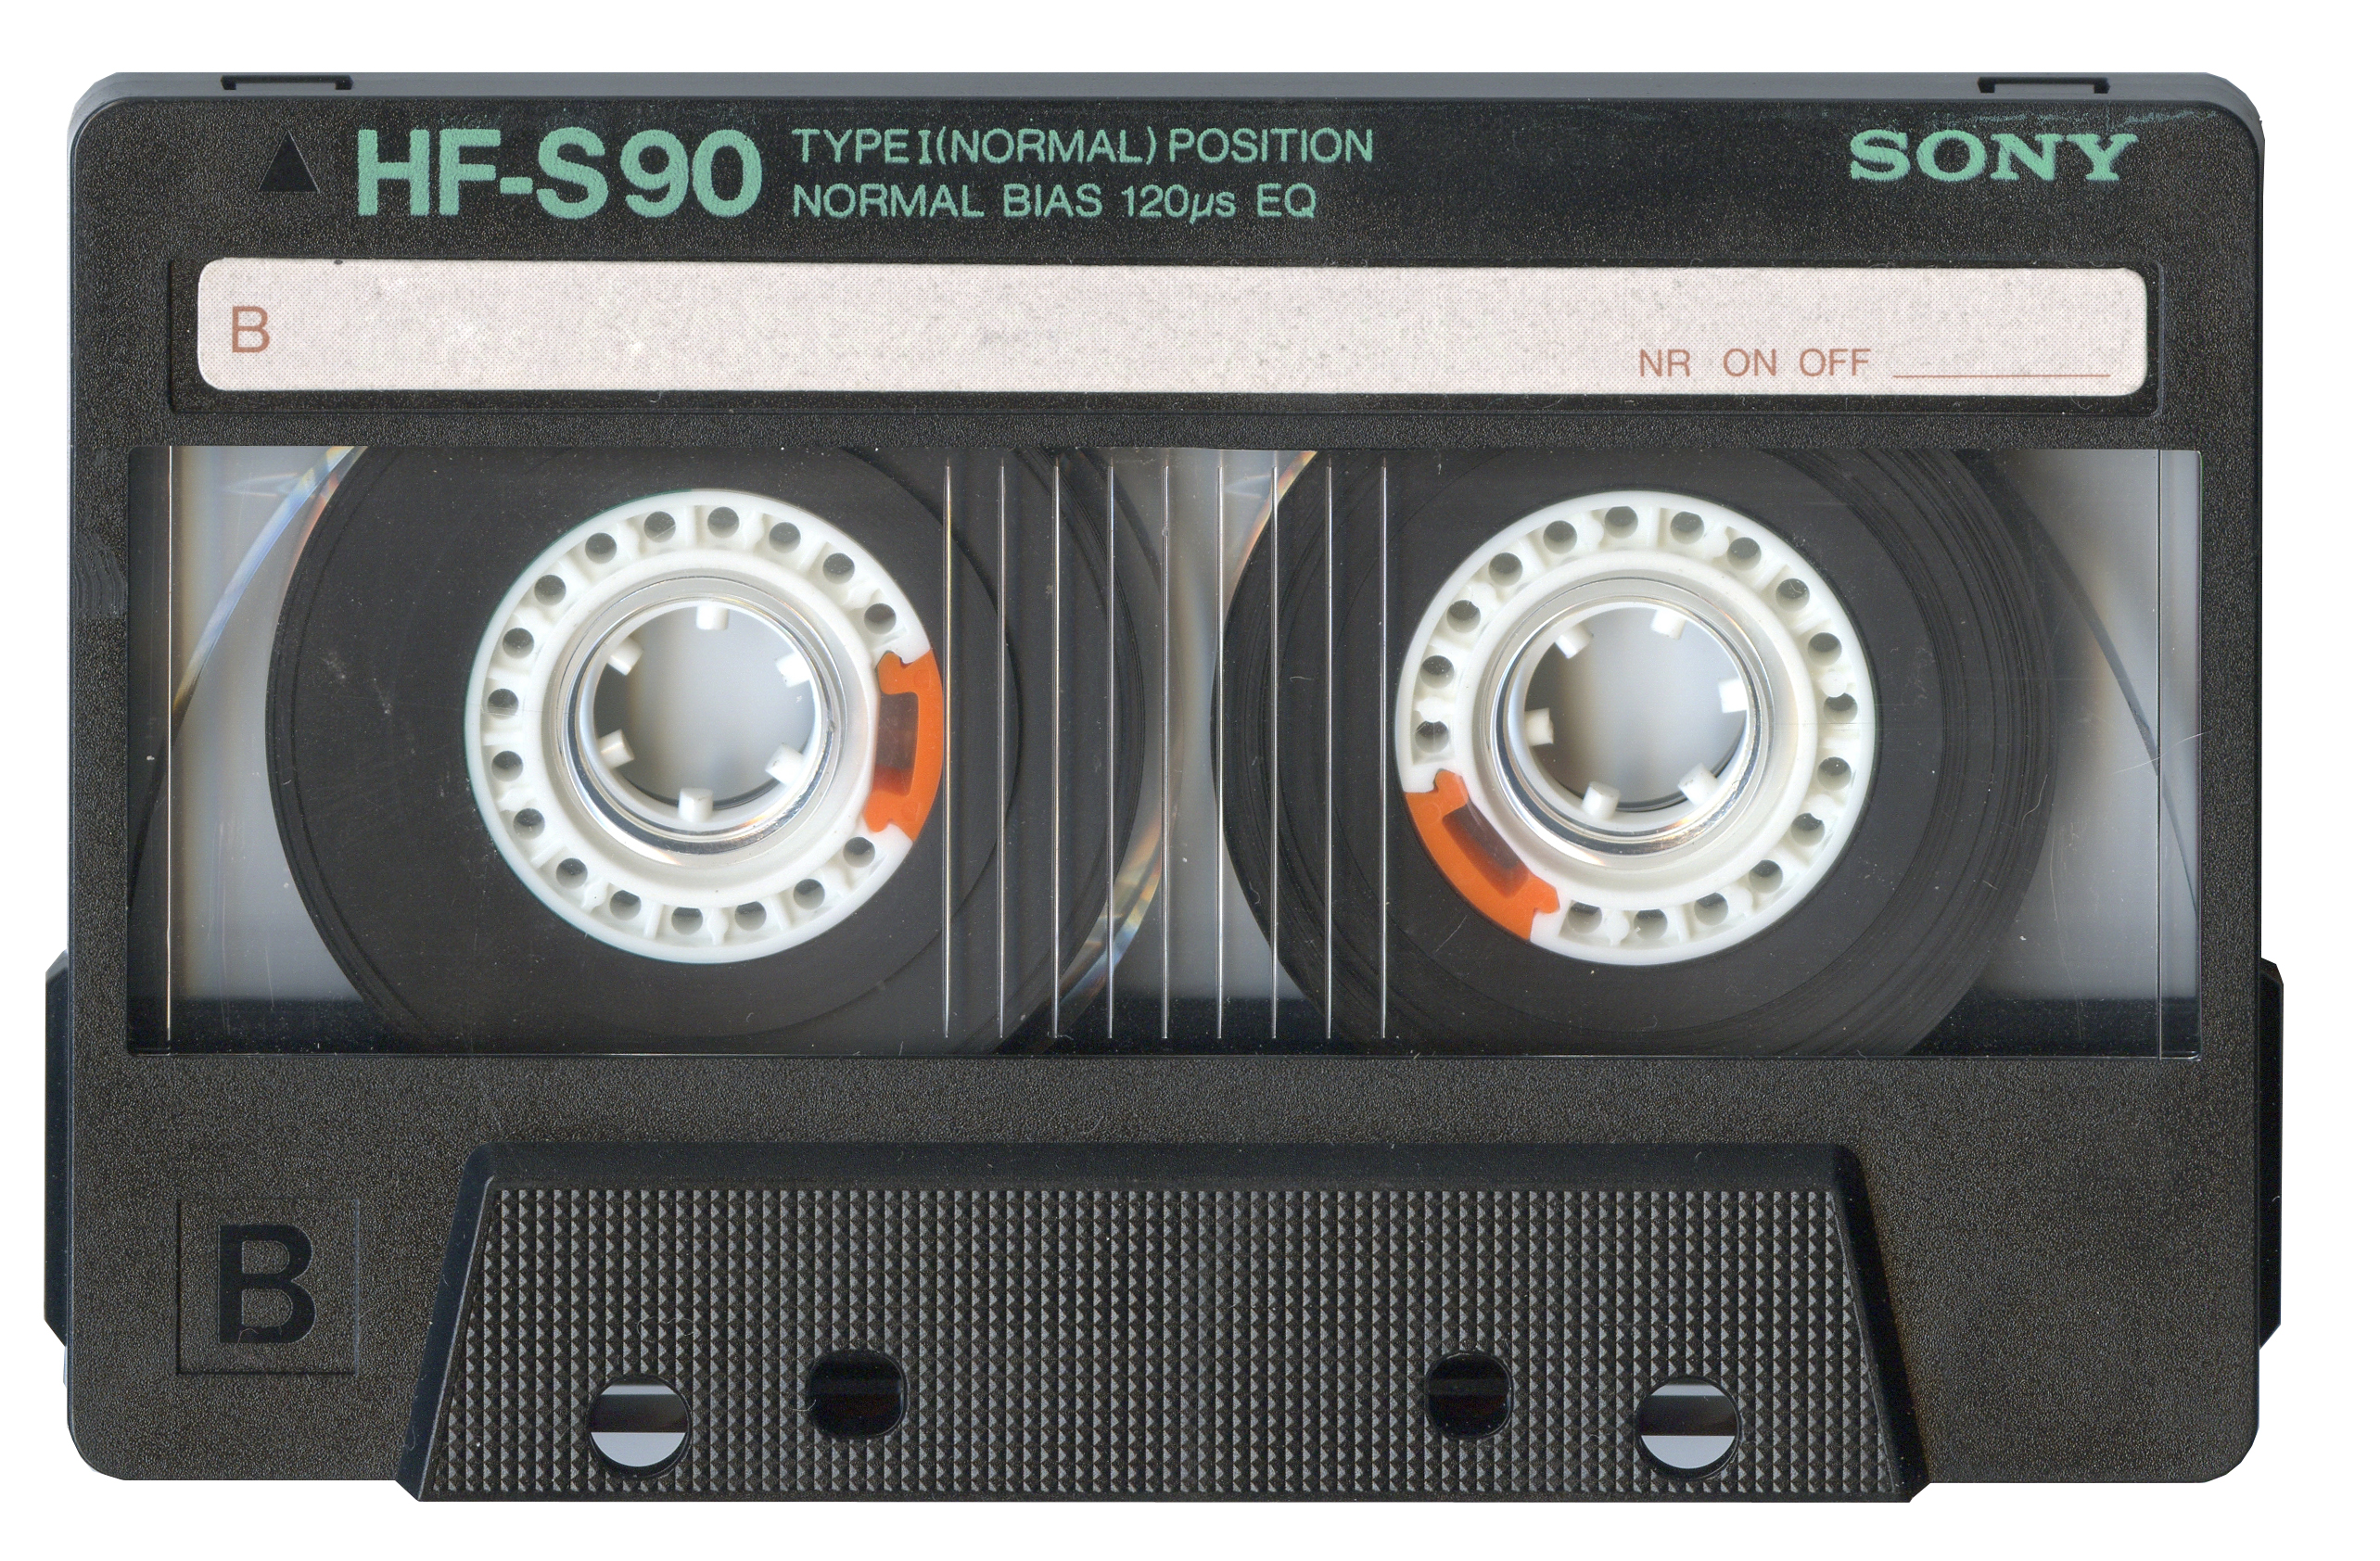 Cassette-Tape, image courtesy of www.geeksandbeats.com